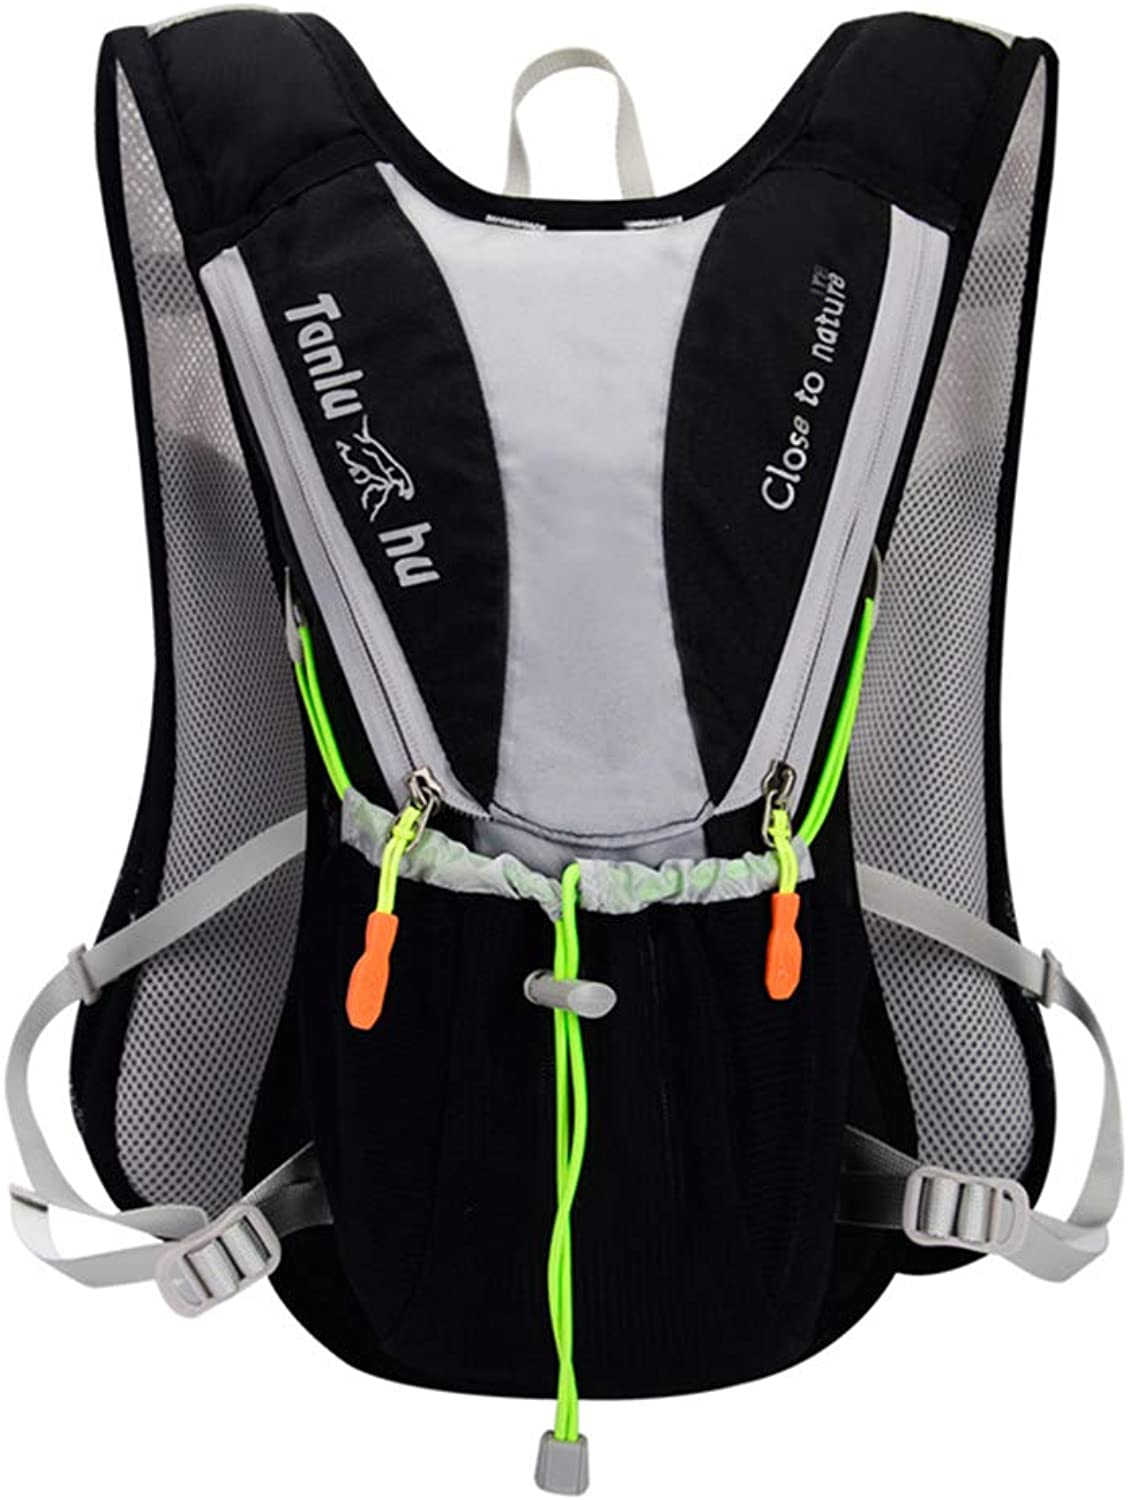 Trail Running Backpack Cycling Backpack Marathon Backpack Outdoor Sports Backpack for Men Women Kid for Marathon Cycling Outdoor Running